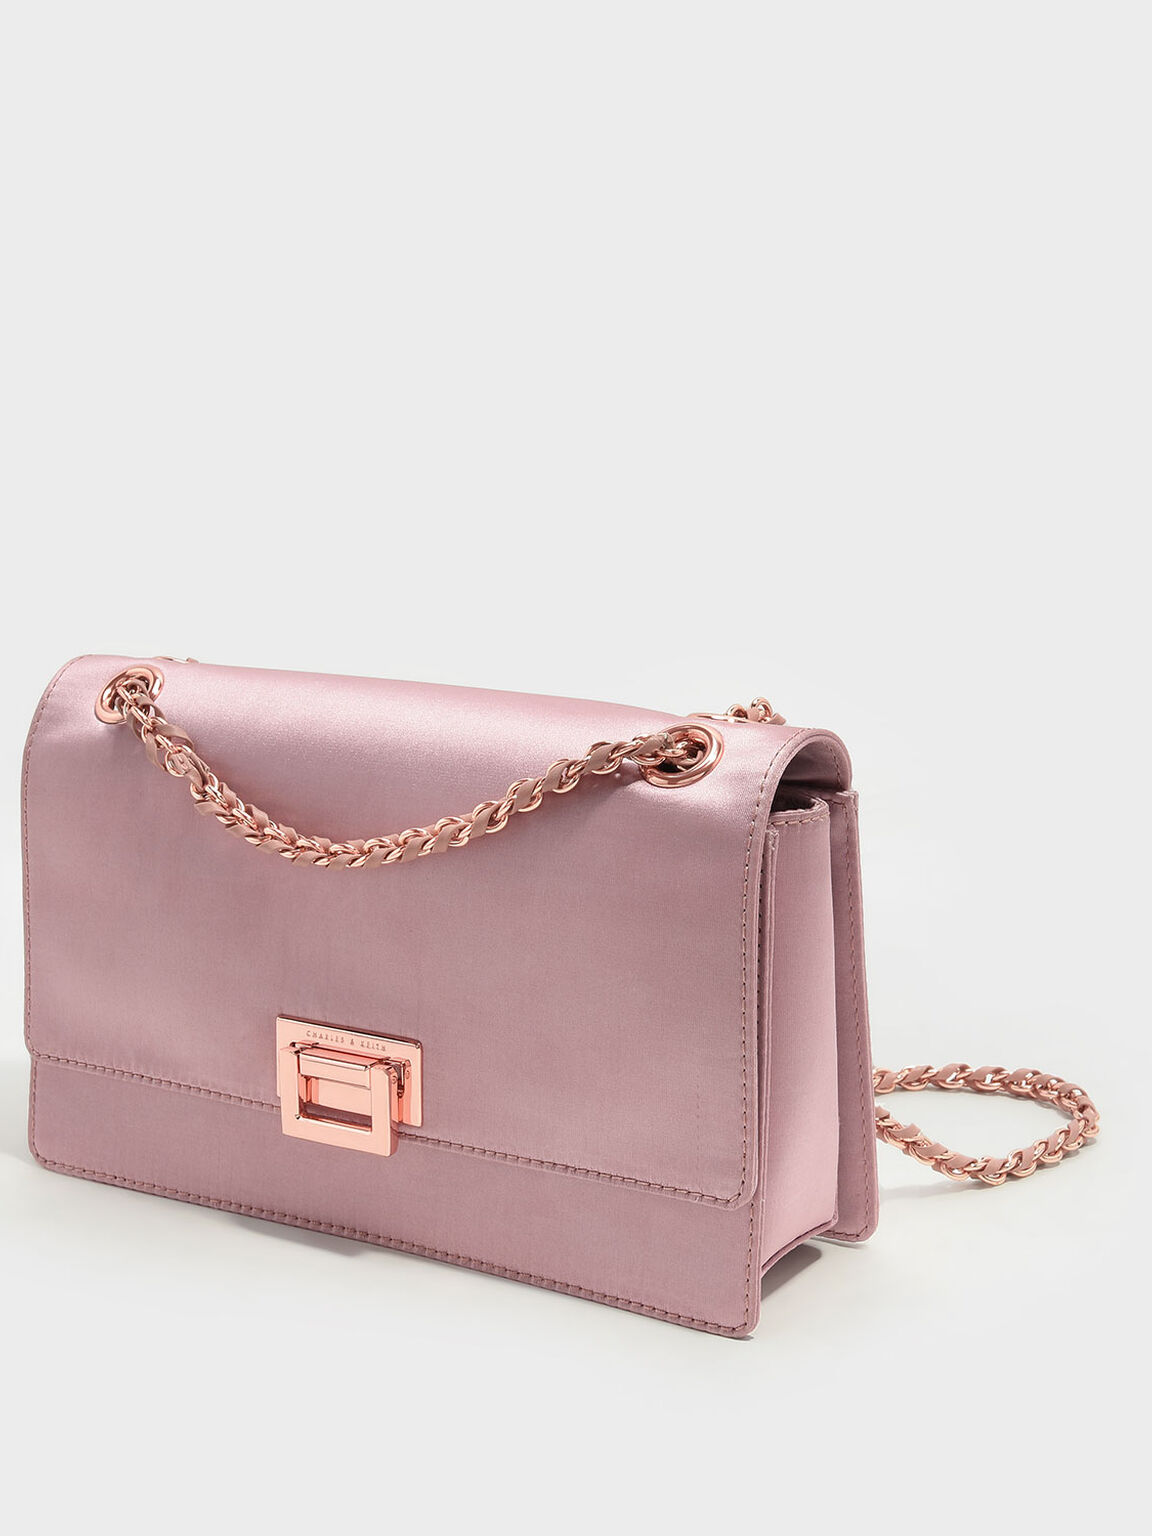 Push-Lock Shoulder Bag, Pink, hi-res